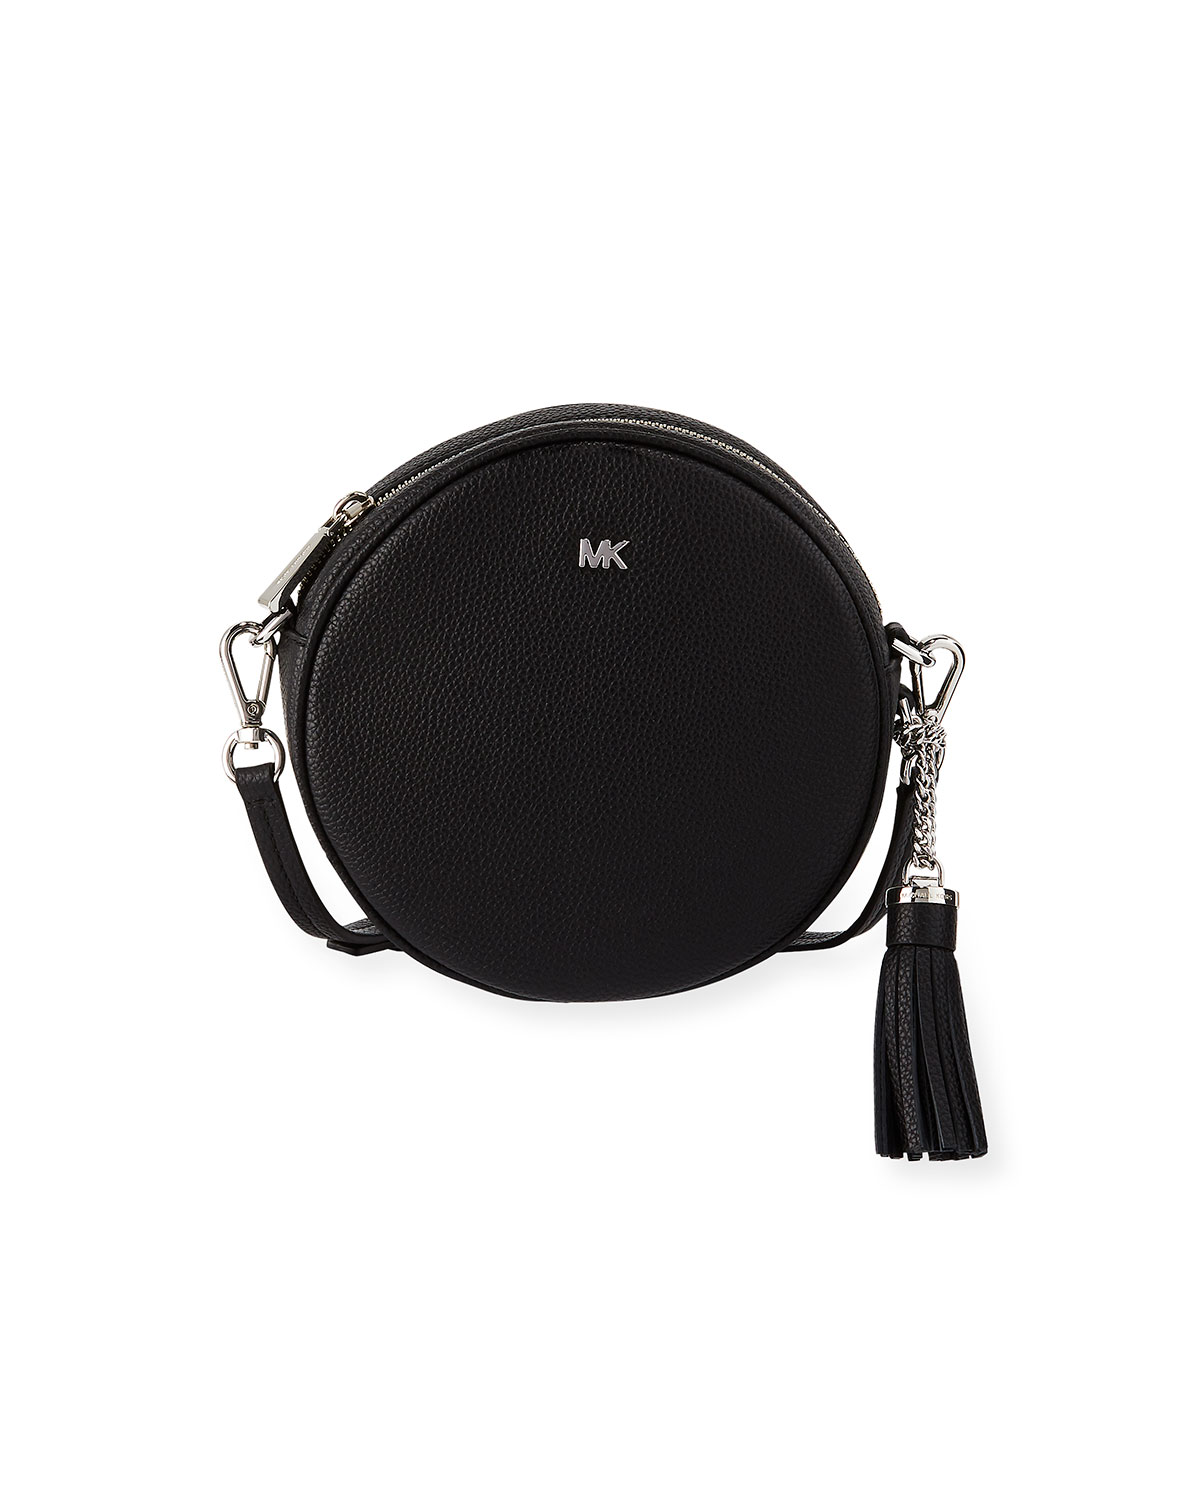 d947db14a1e5 MICHAEL Michael Kors Canteen Medium Round Leather Crossbody Bag -  Silvertone Hardware